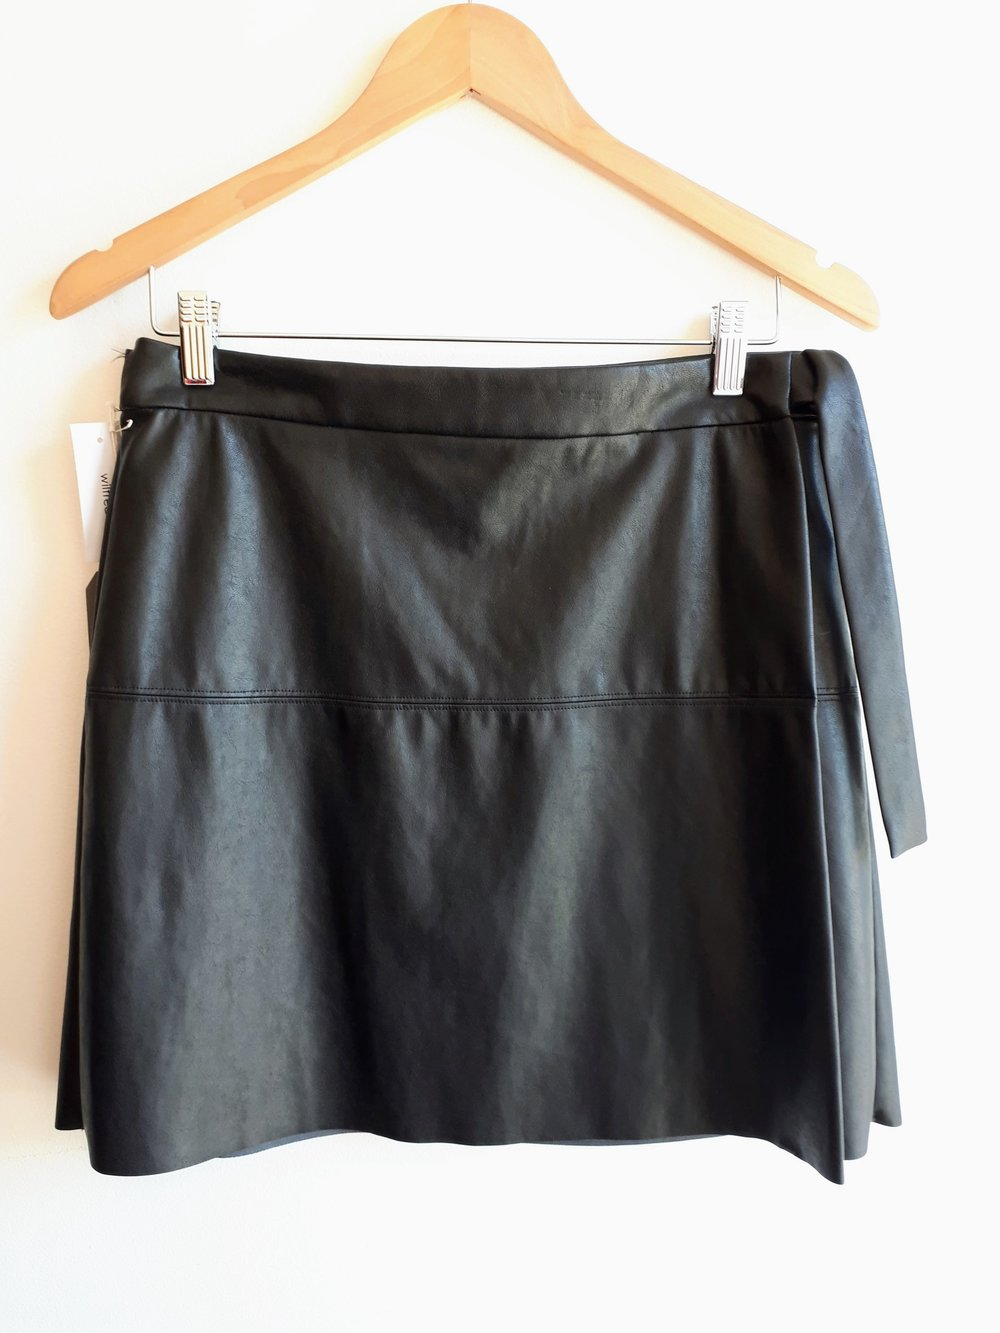 Wilfred skirt (NWT); Size M, $52